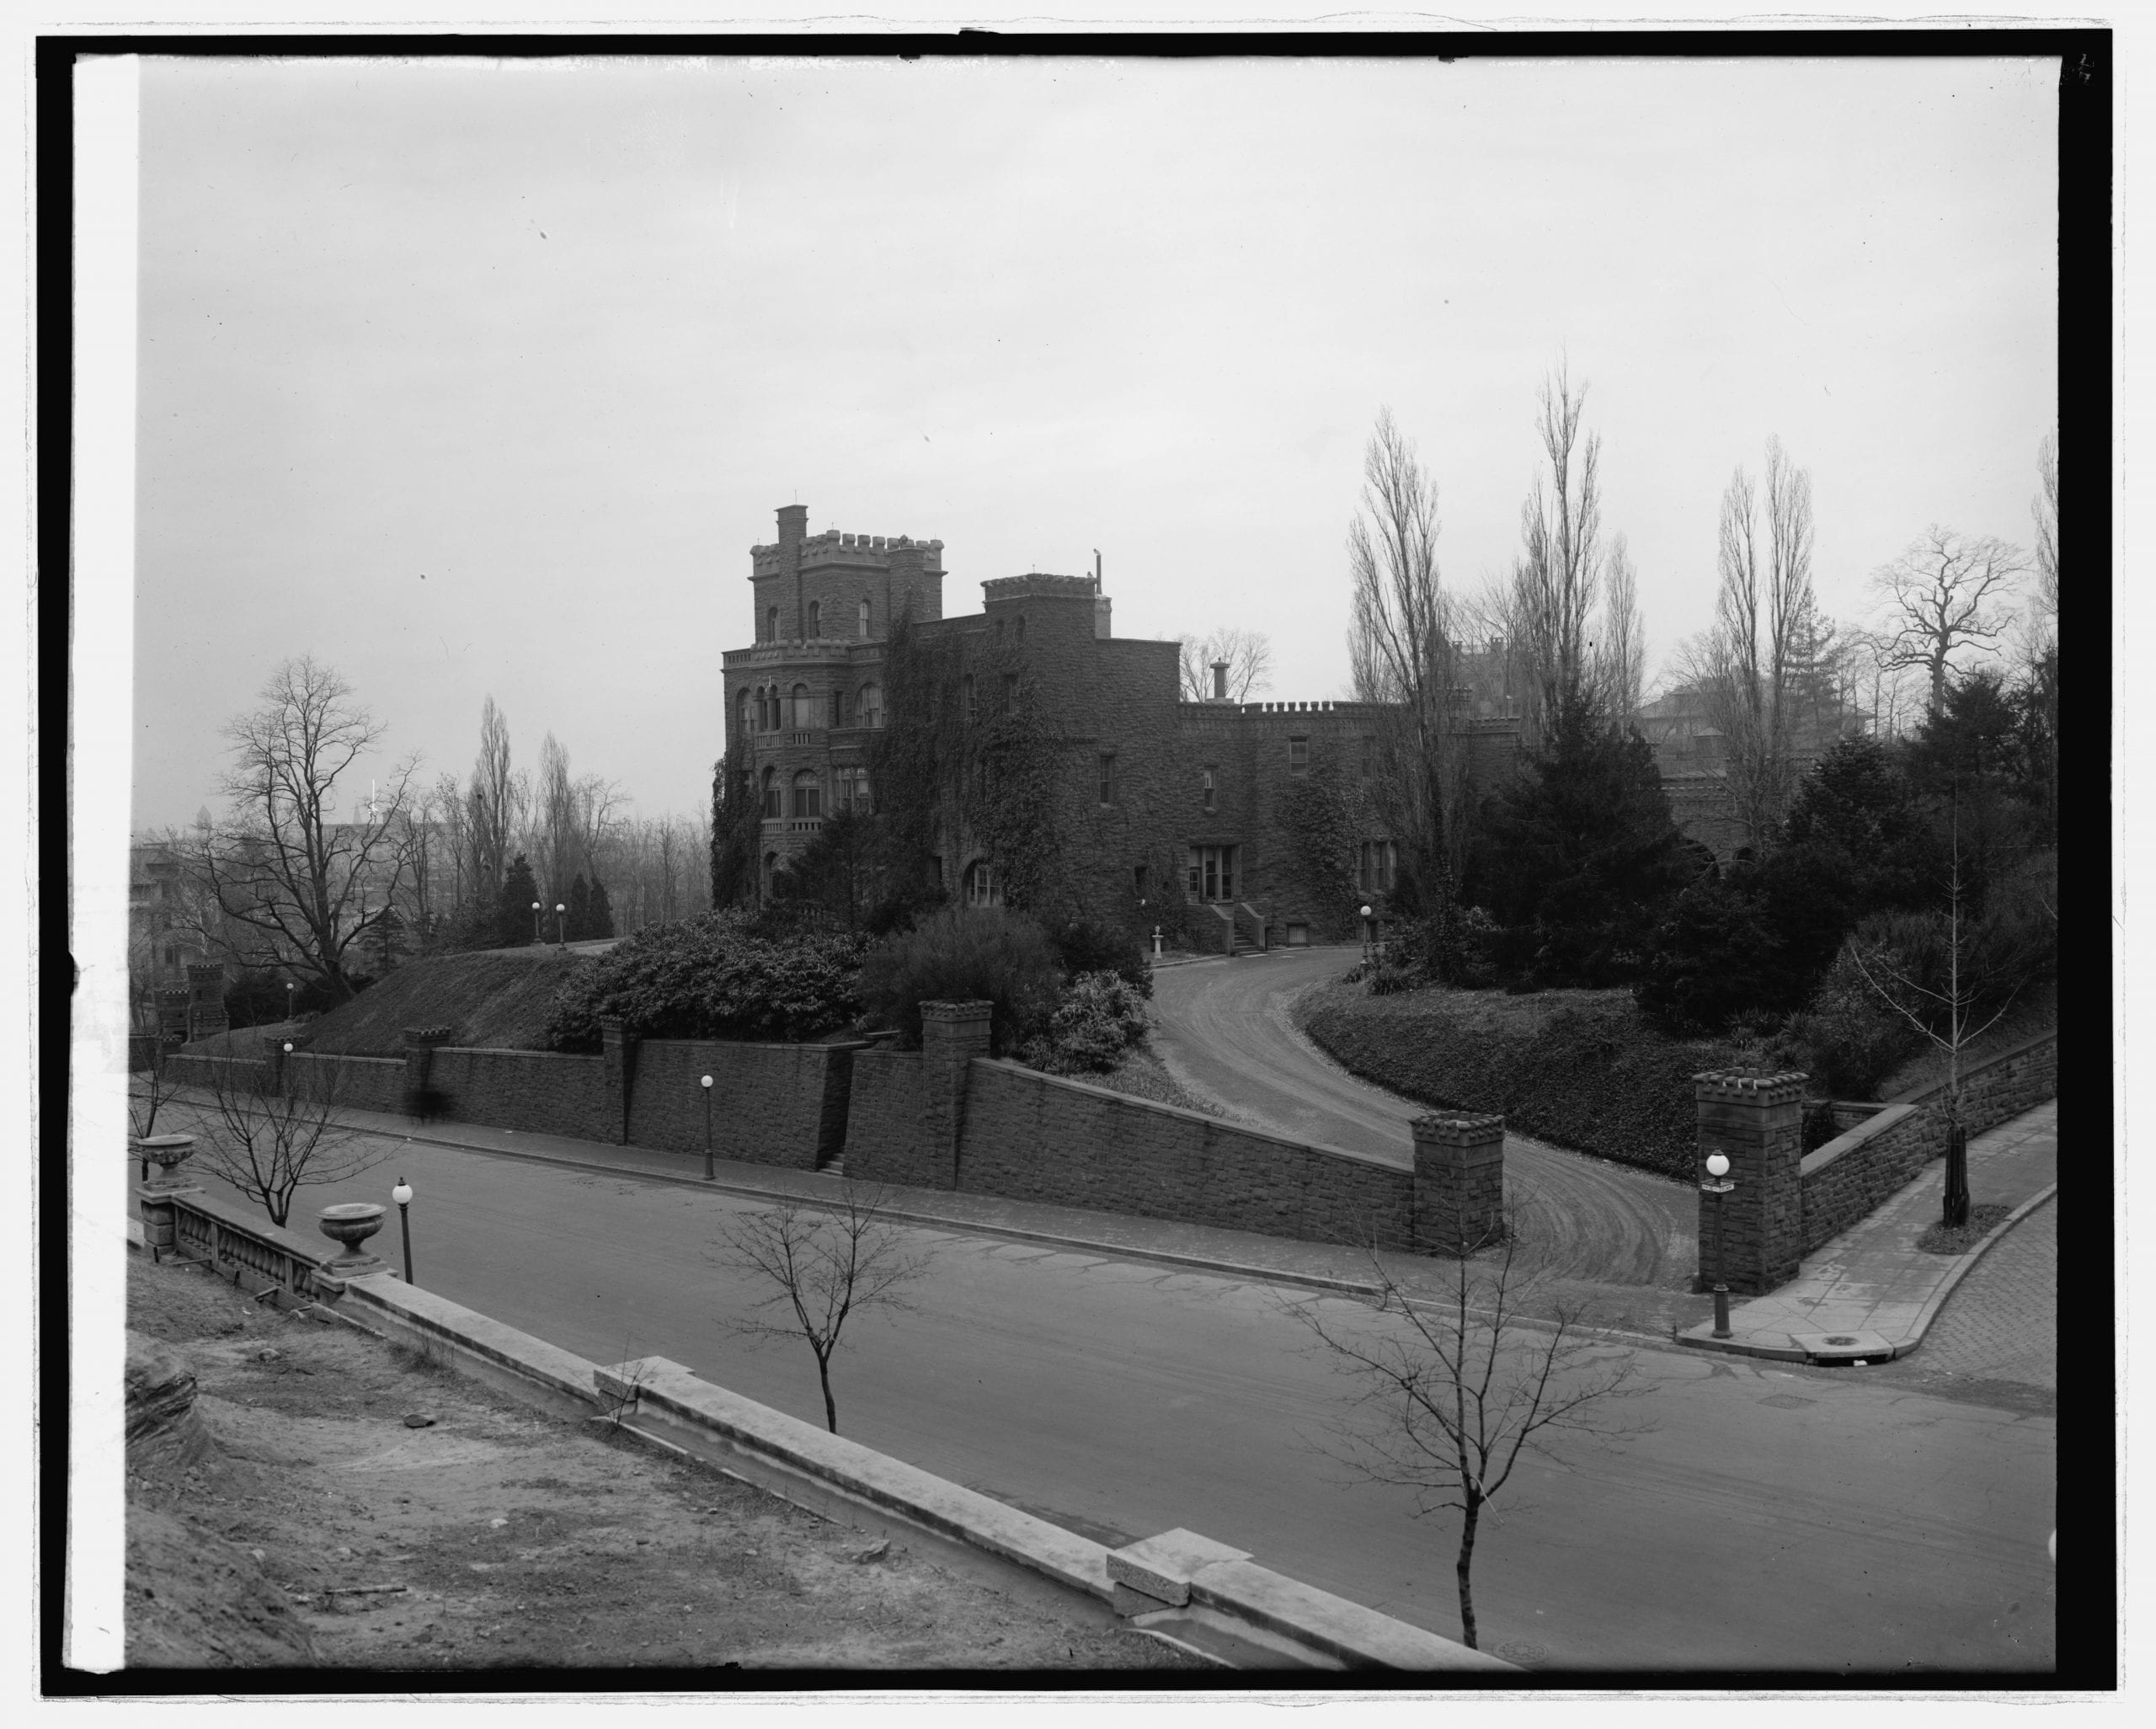 Boundary Castle view at intersection of 16th and Belmont in 1920s